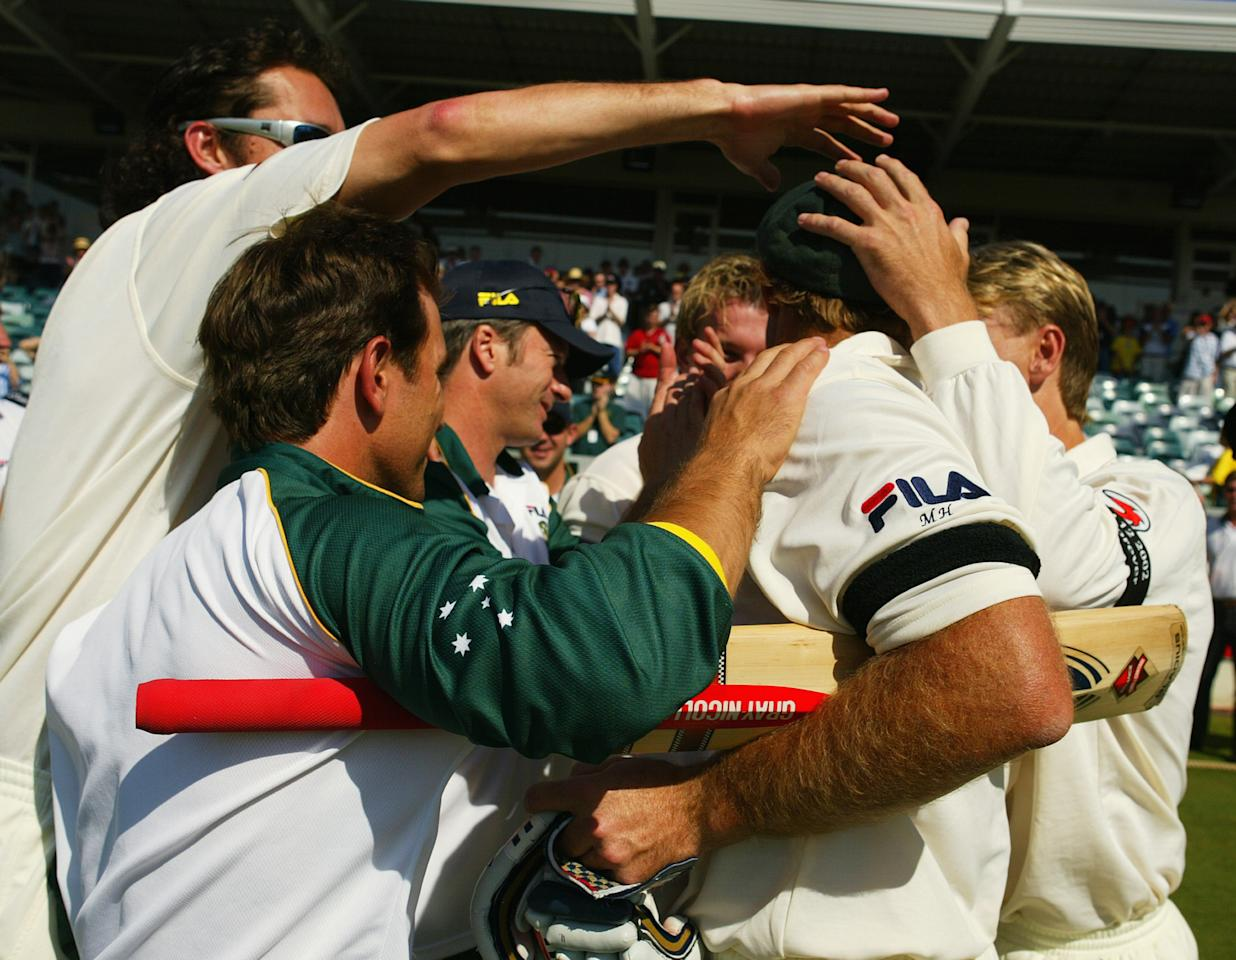 PERTH, AUSTRALIA - OCTOBER 10:  Matthew Hayden of Australia is congratulated by team mates after breaking Brian Lara of The West Indies world record of 375 during day two of the First Test between Australia and Zimbabwe played at the WACA Ground on October 10, 2003 in Perth, Australia. (Photo by Hamish Blair/Getty Images)